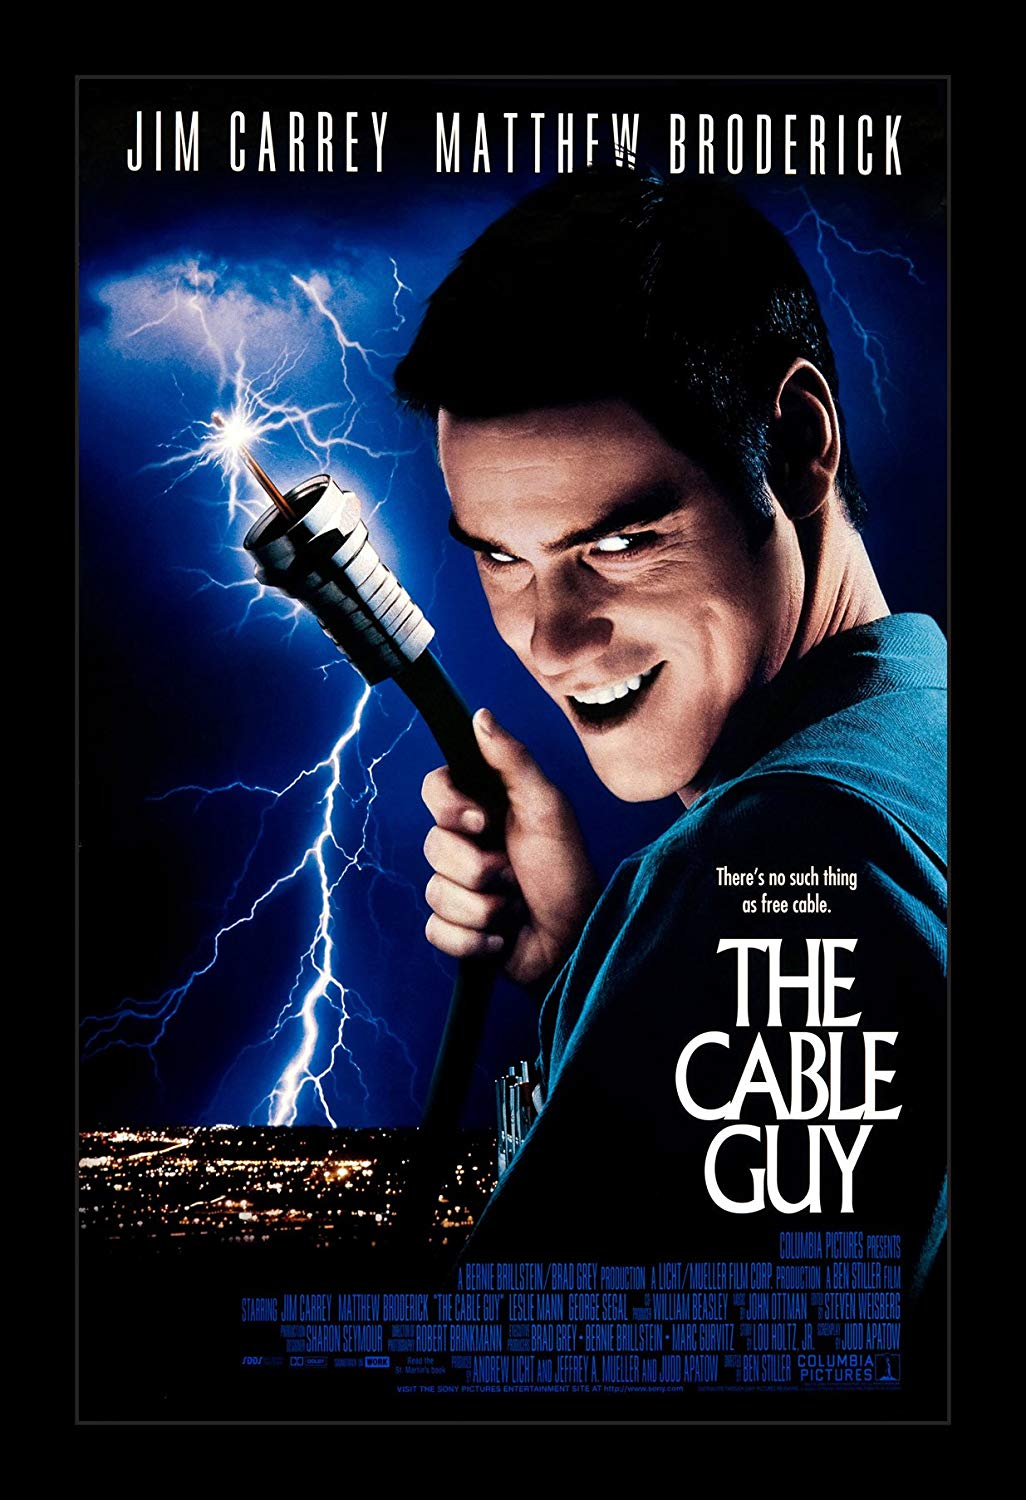 The Cable Guy (1996) - Directed by: Ben StillerStarring: Jim Carrey, Matthew Broderick, Leslie Mann, Jack Black, Eric Roberts, David Cross, Owen Wilson, Andy Dick, Ben StillerRated: PG-13 for Dark Thematic Elements and Crude HumorRunning Time: 1 h 36 mTMM Score: 2.5 stars out of 5STRENGTHS: Unique Story, Some HumorWEAKNESSES: Some Humor